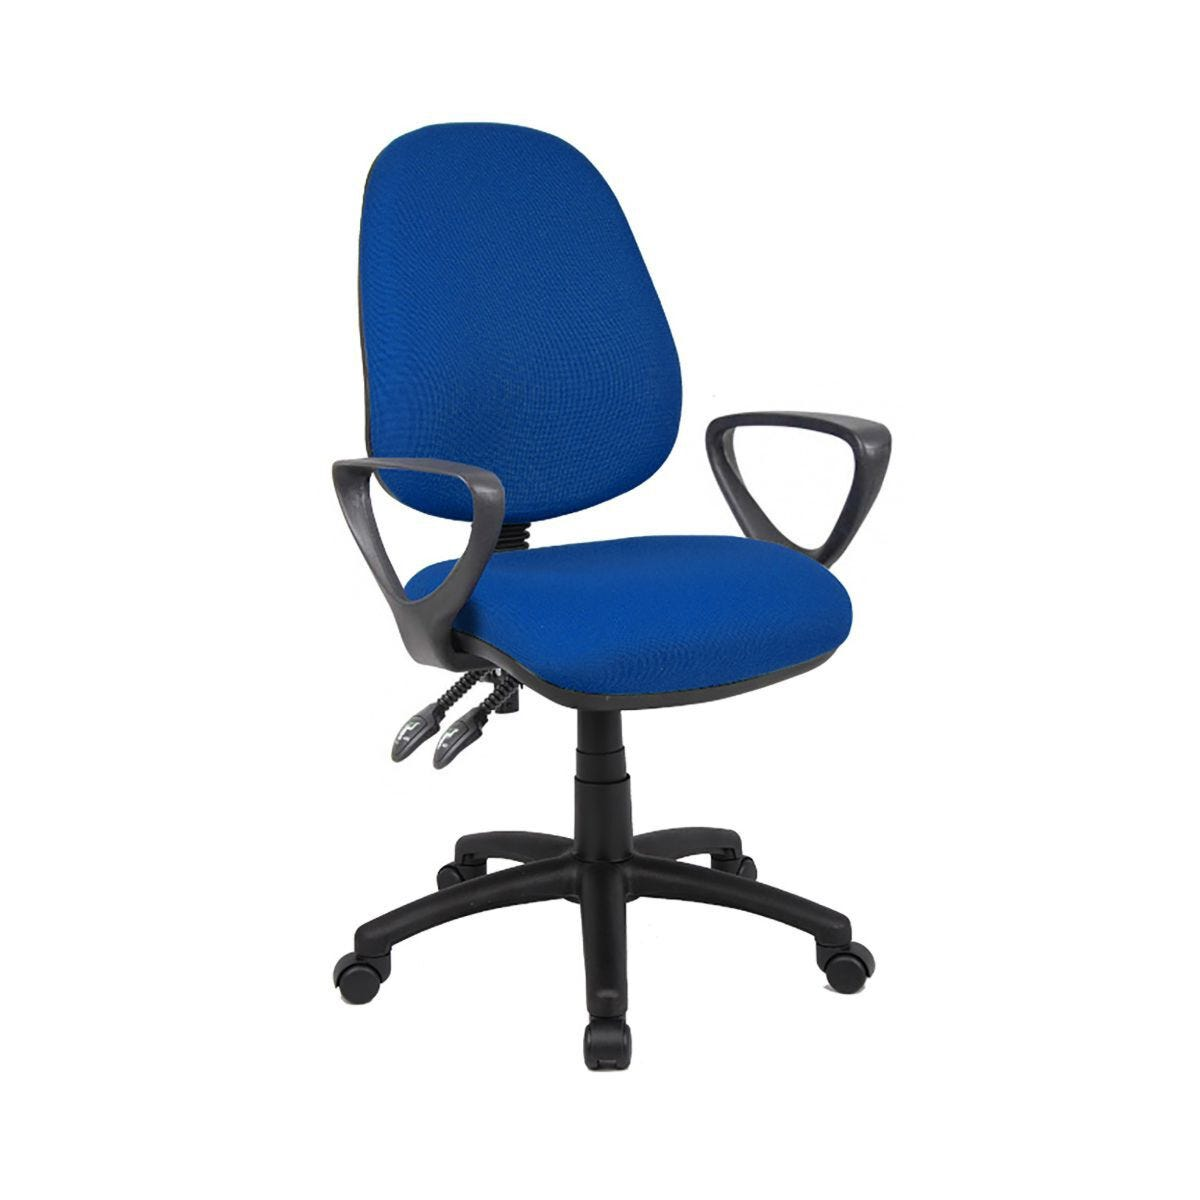 Fabric Operator's Chair With Fixed Arm